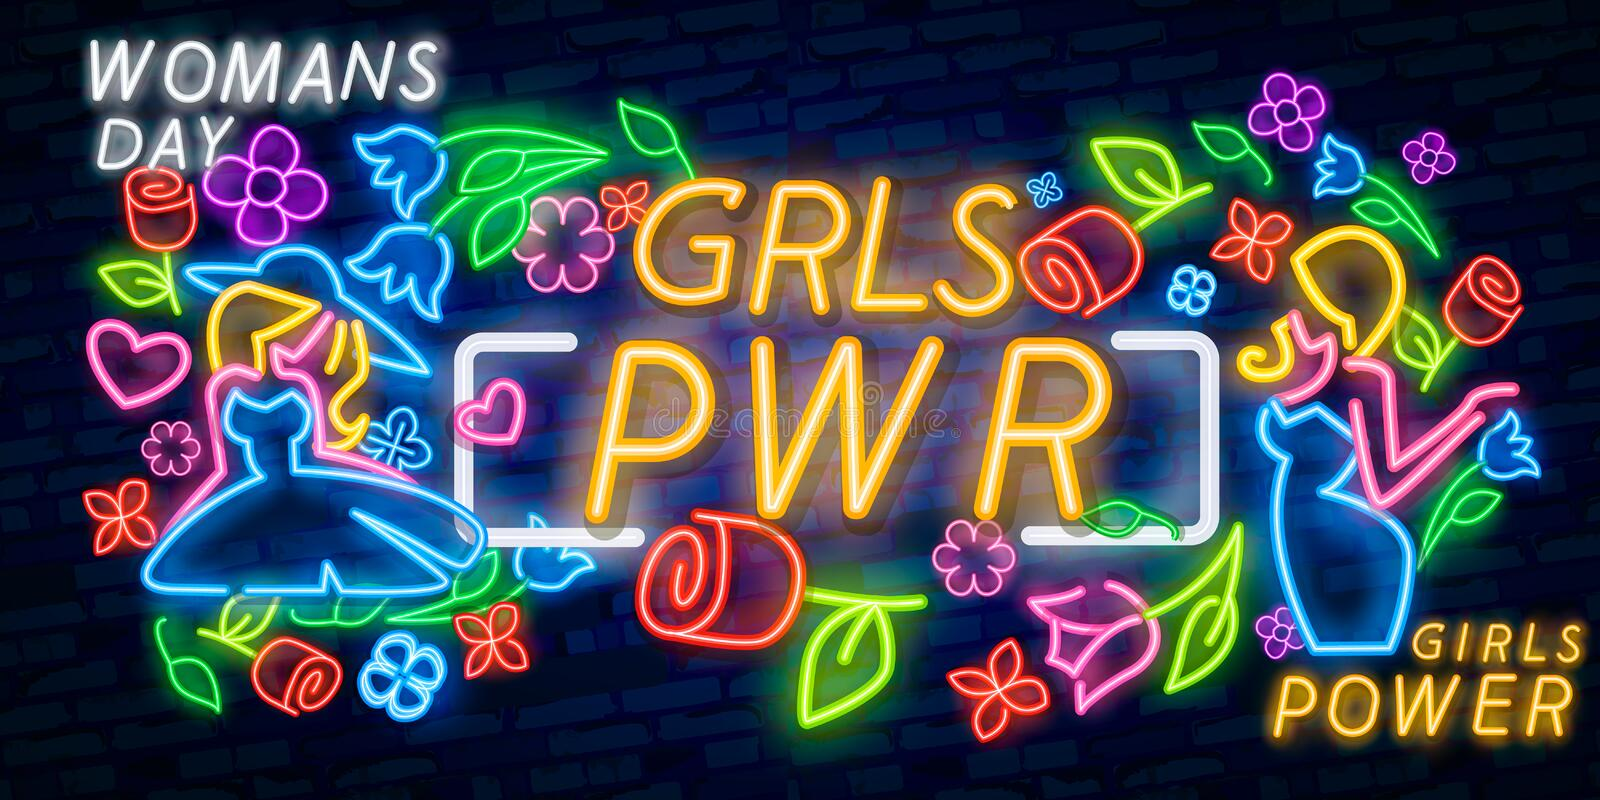 Girl Power neon sign vector. Grl Pwr Design template neon sign, light banner, neon signboard, nightly bright advertising, light royalty free illustration